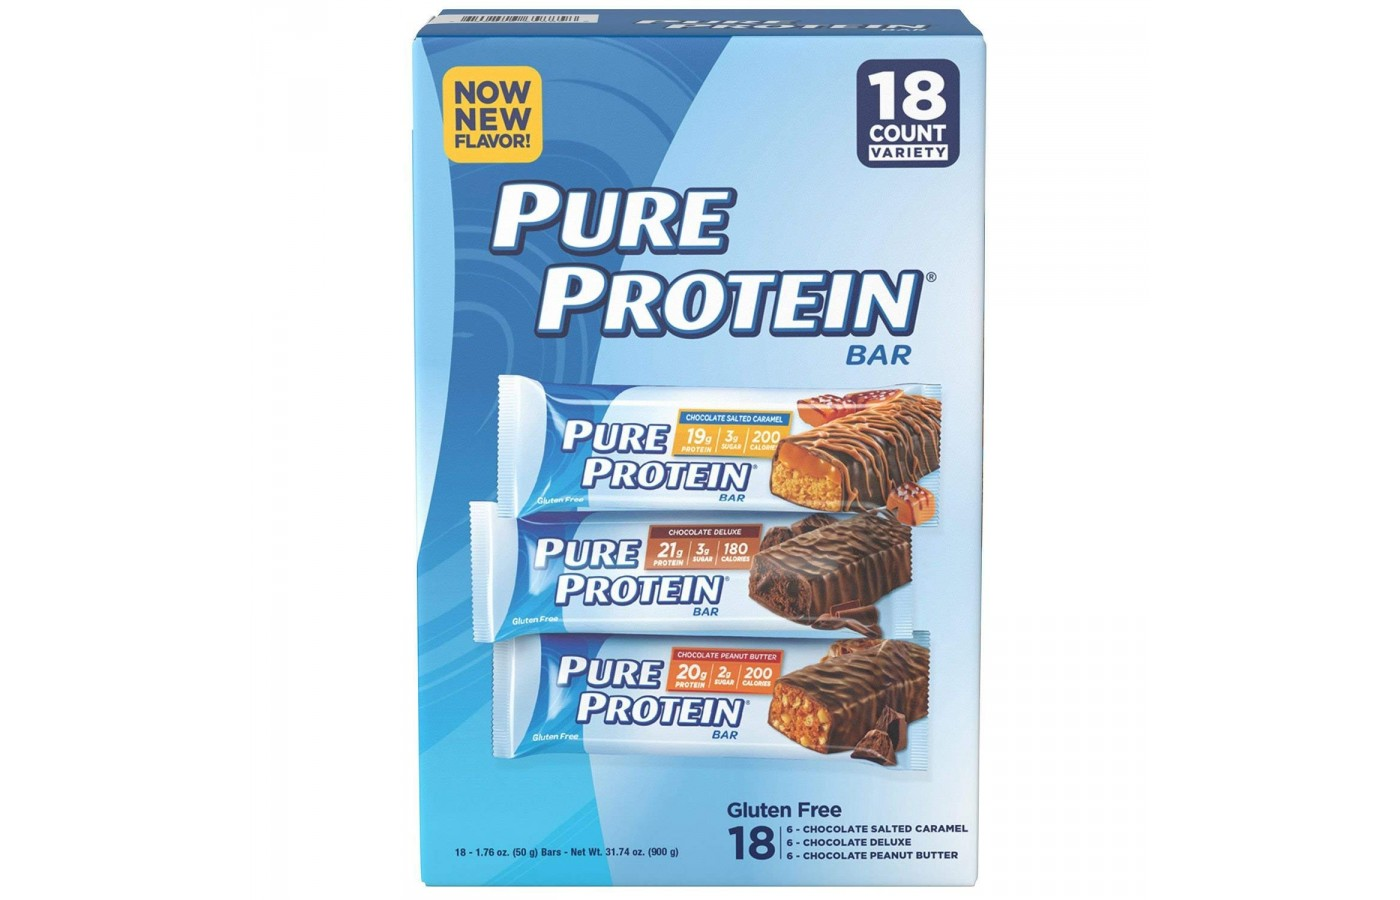 Pure protein Variety Pack